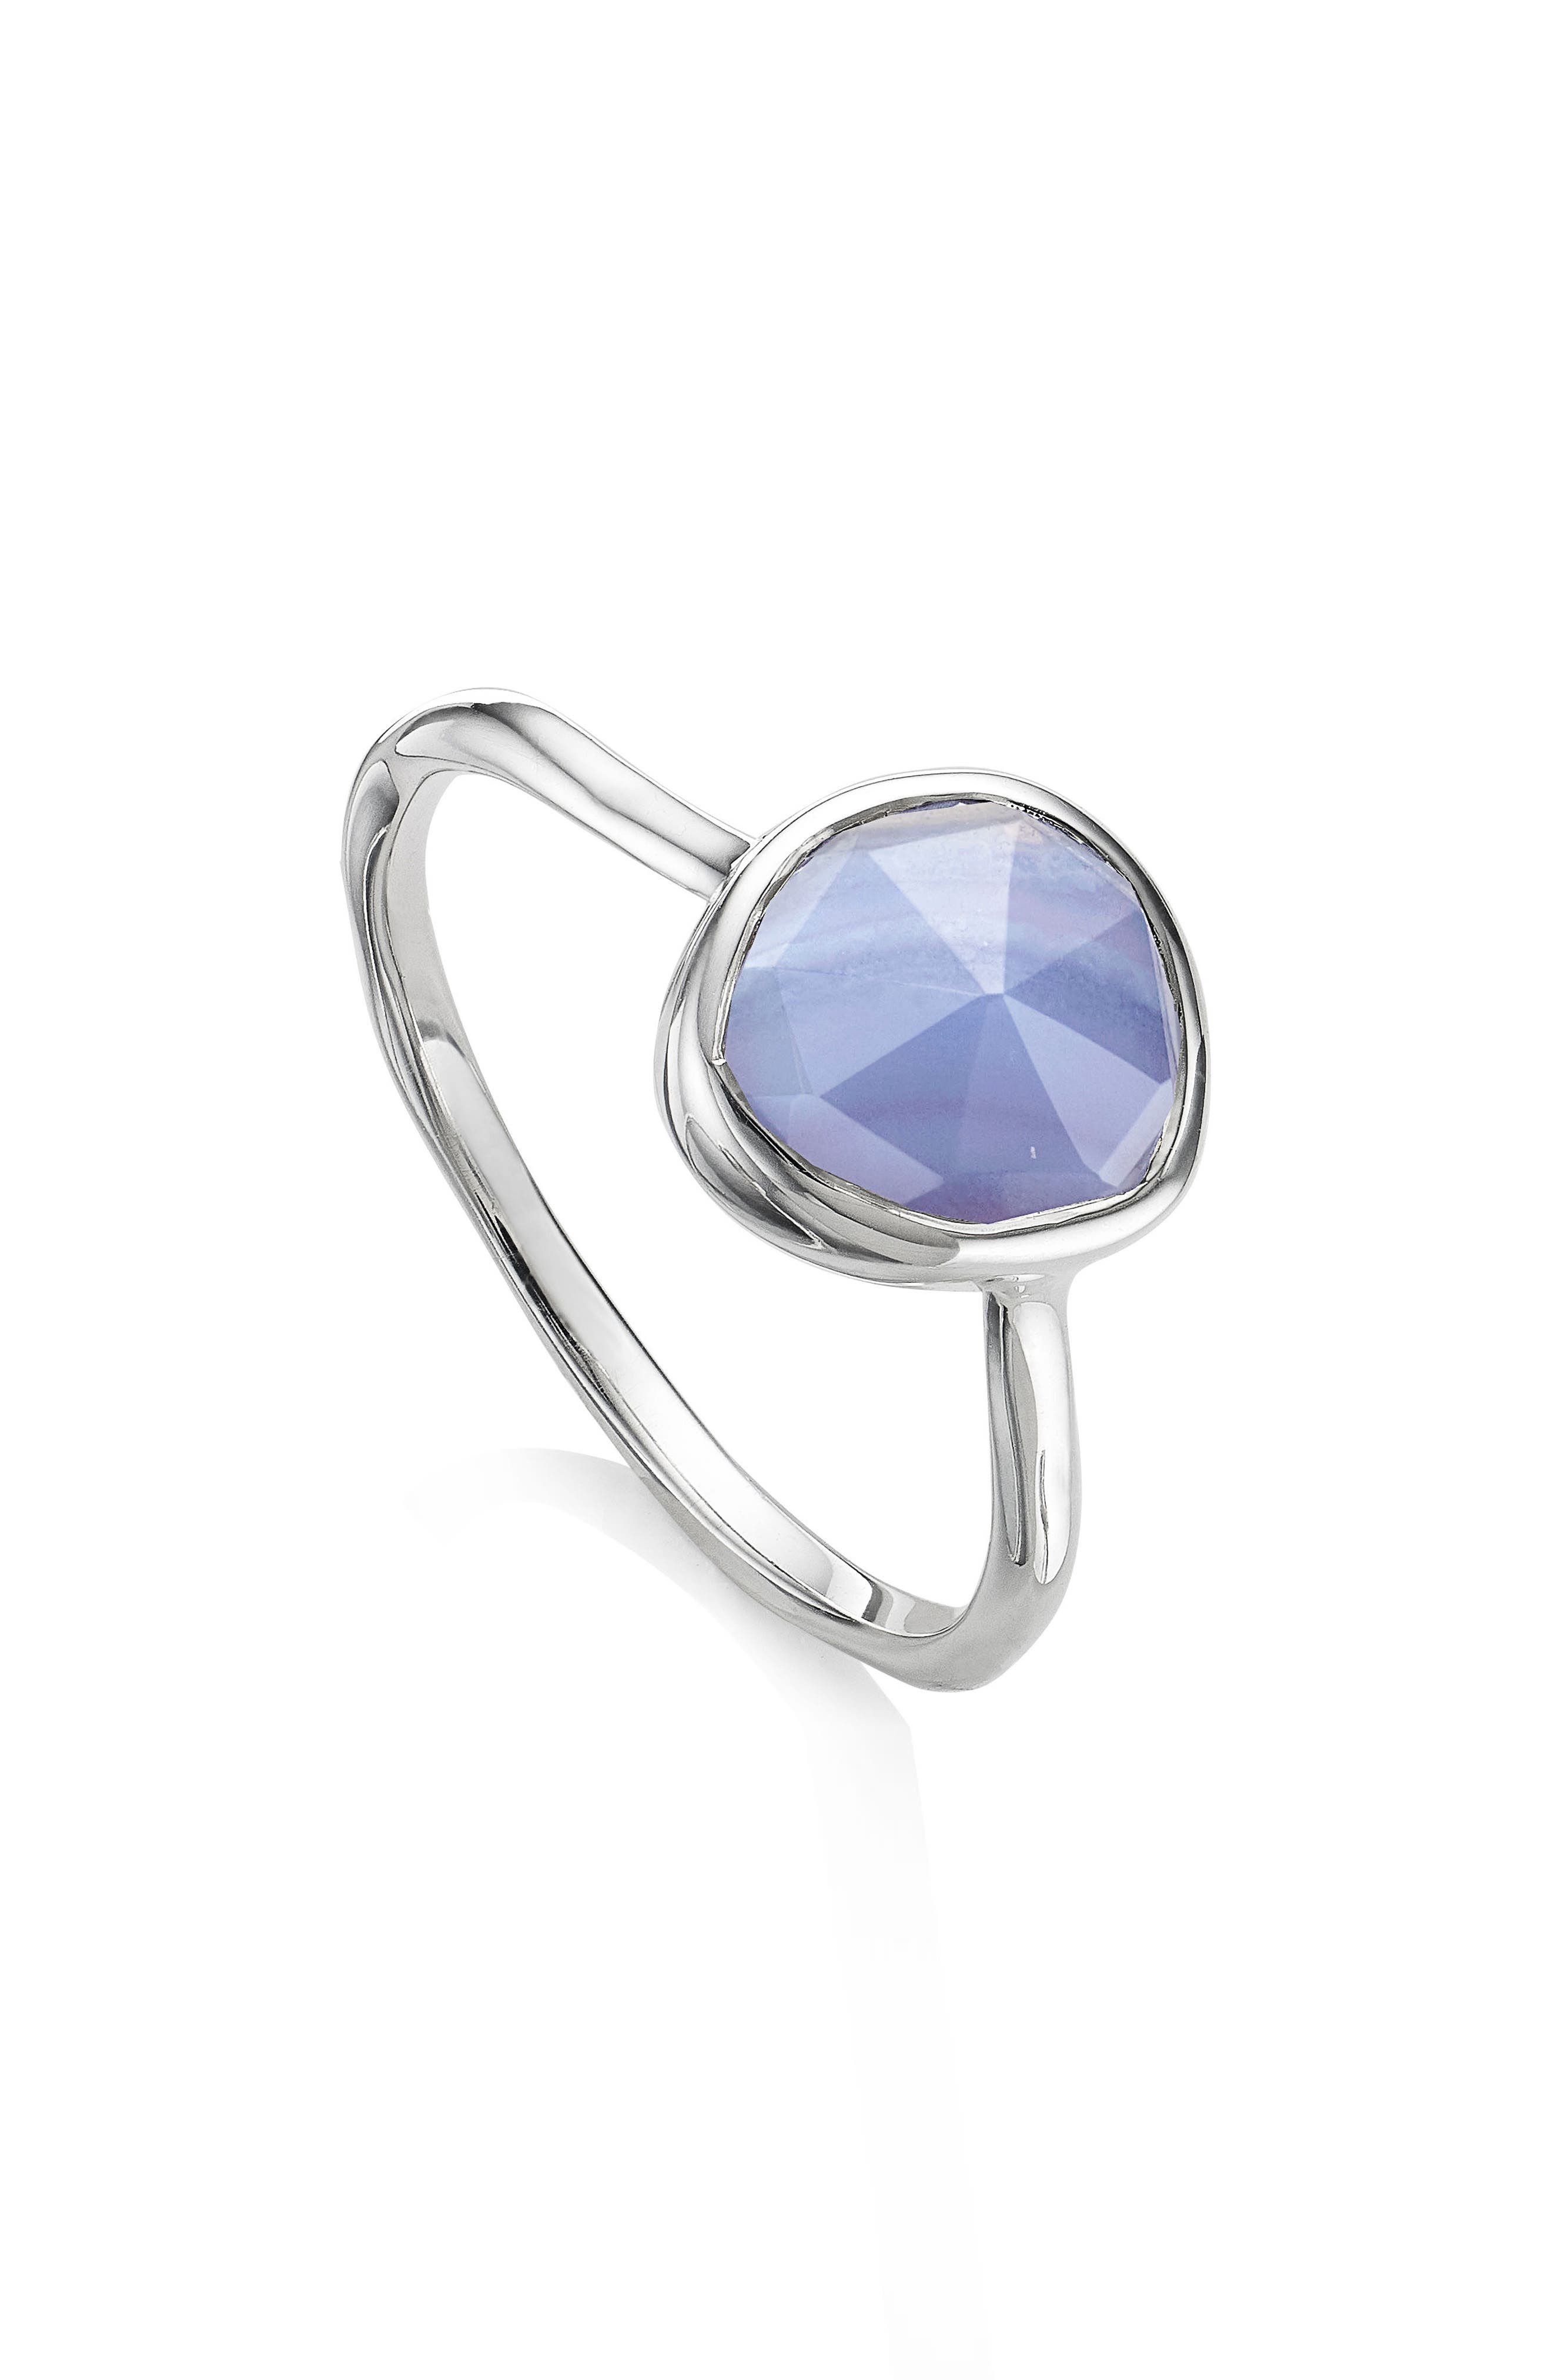 Siren Stacking Ring,                         Main,                         color, Silver/ Blue Lace Agate